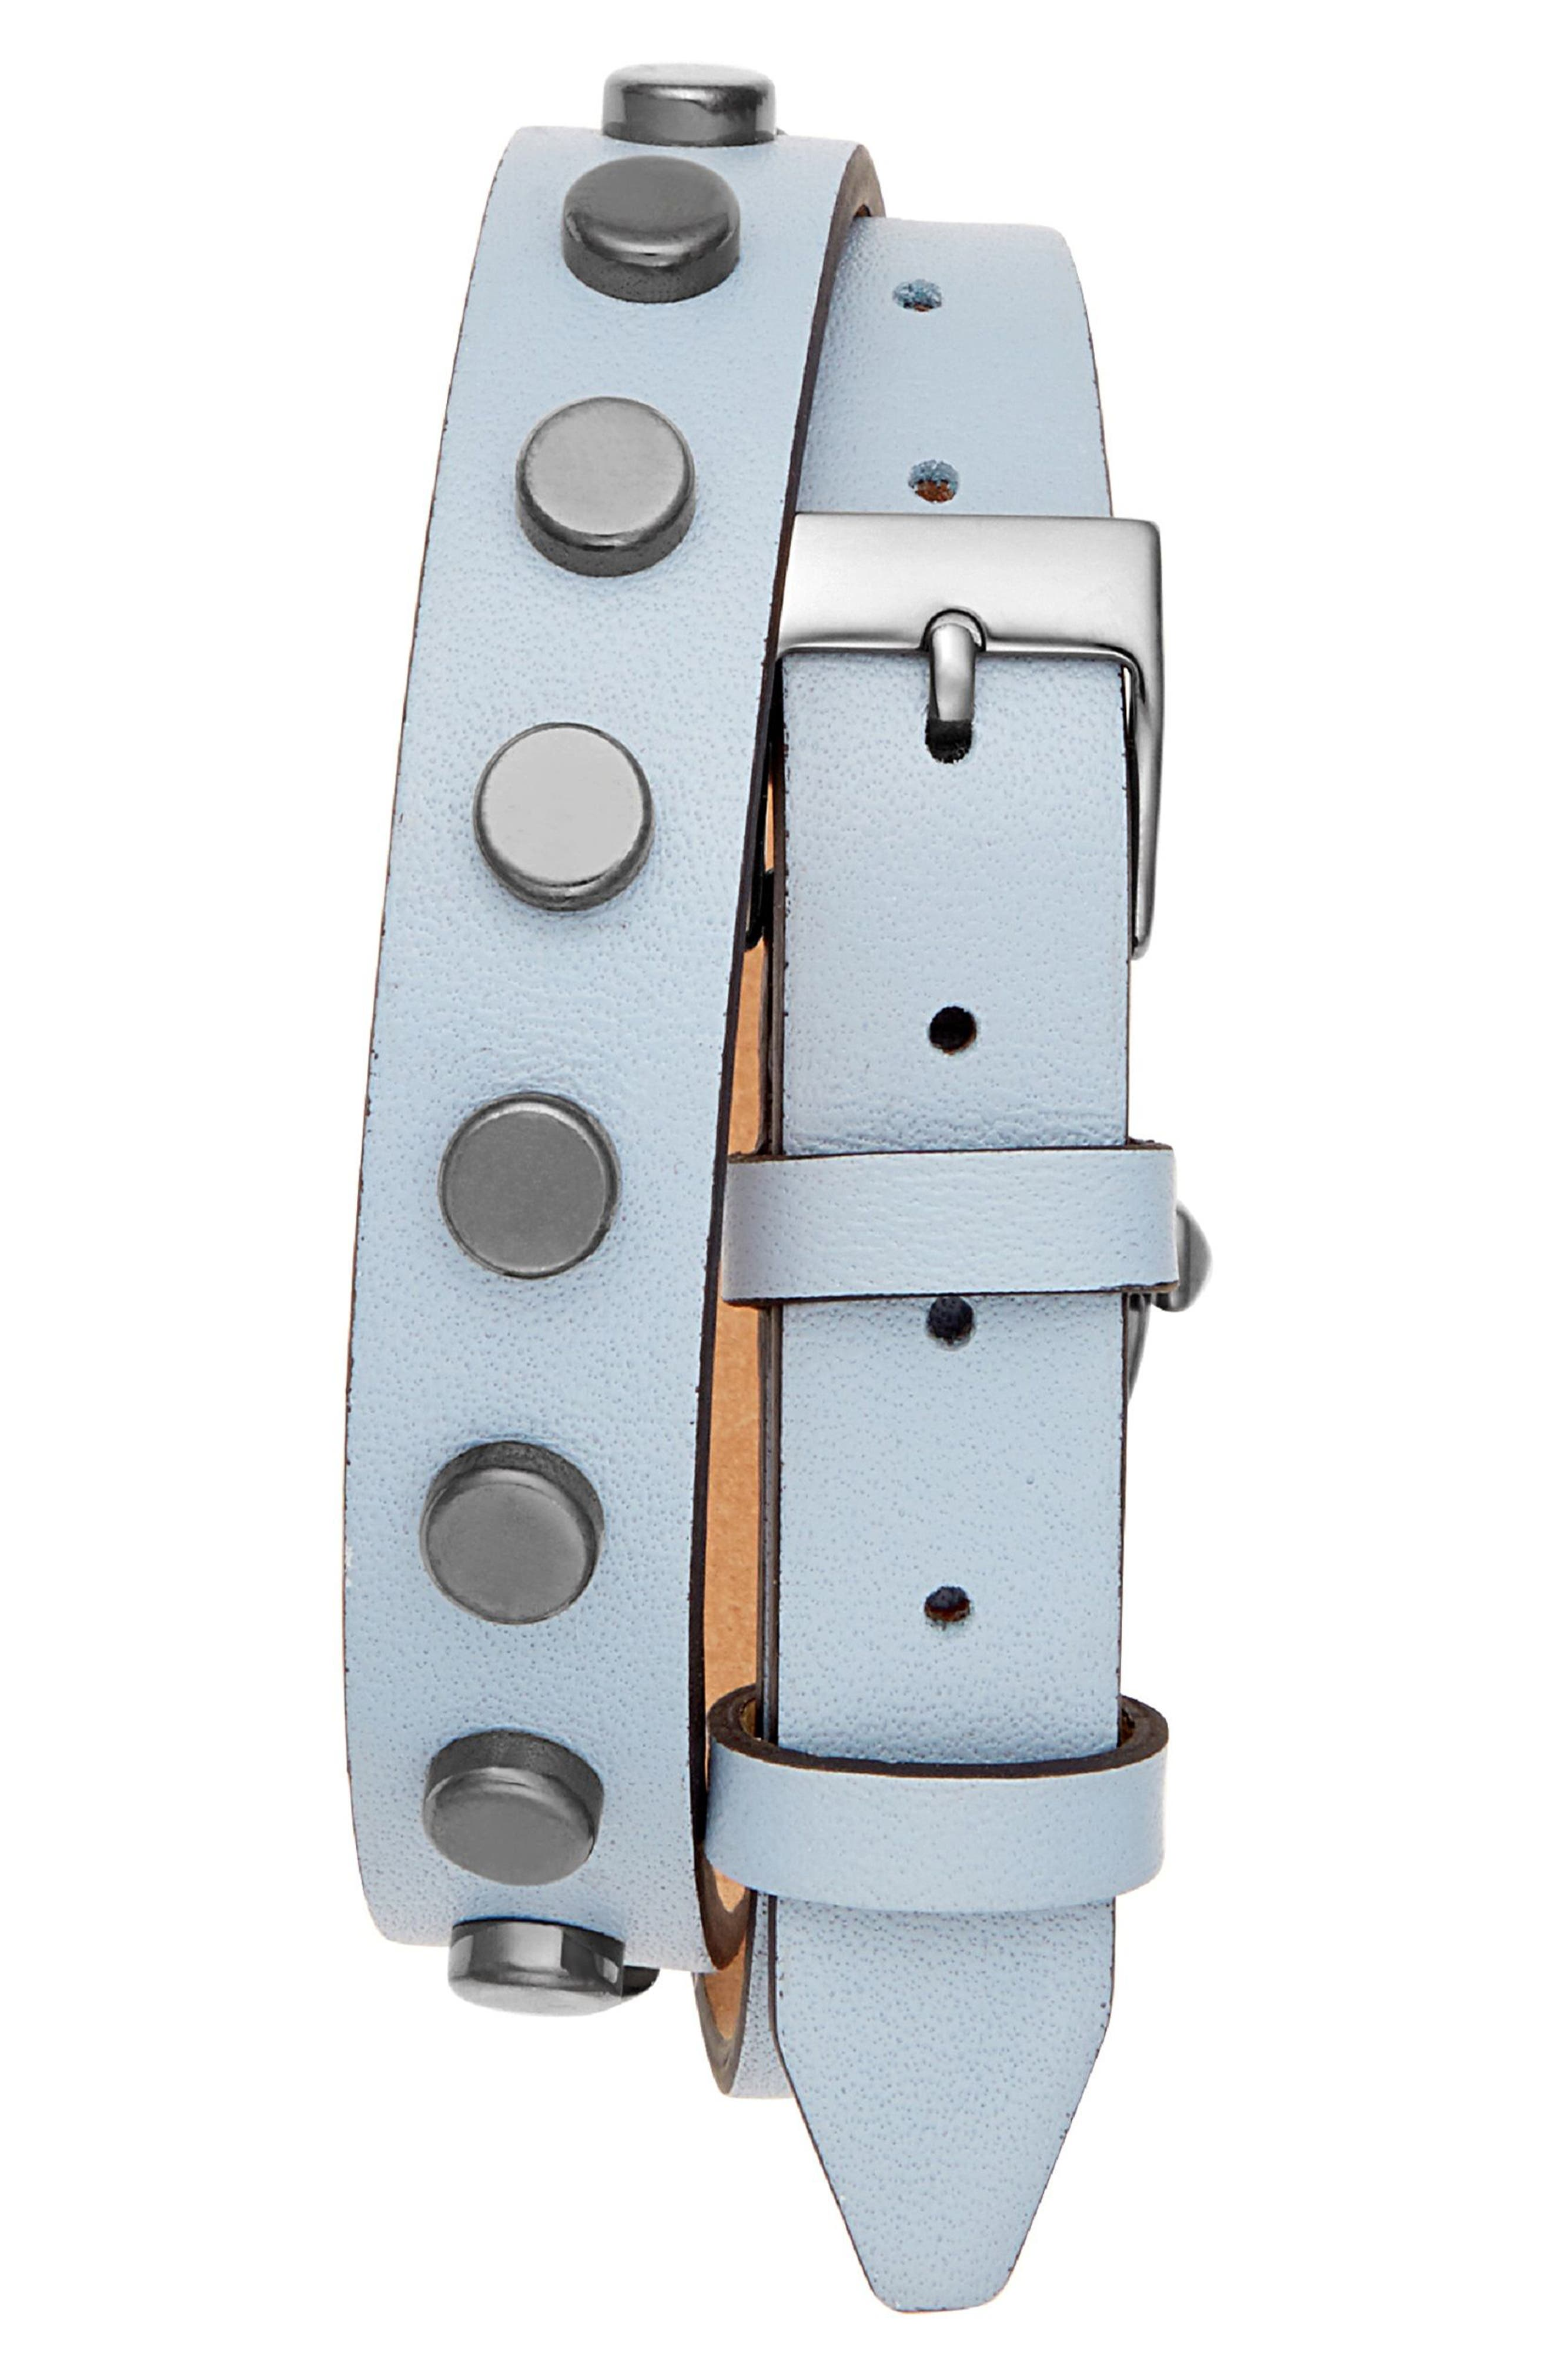 REBECCA MINKOFF,                             BFFLS Double Wrap Leather Strap Watch, 25mm,                             Alternate thumbnail 2, color,                             400